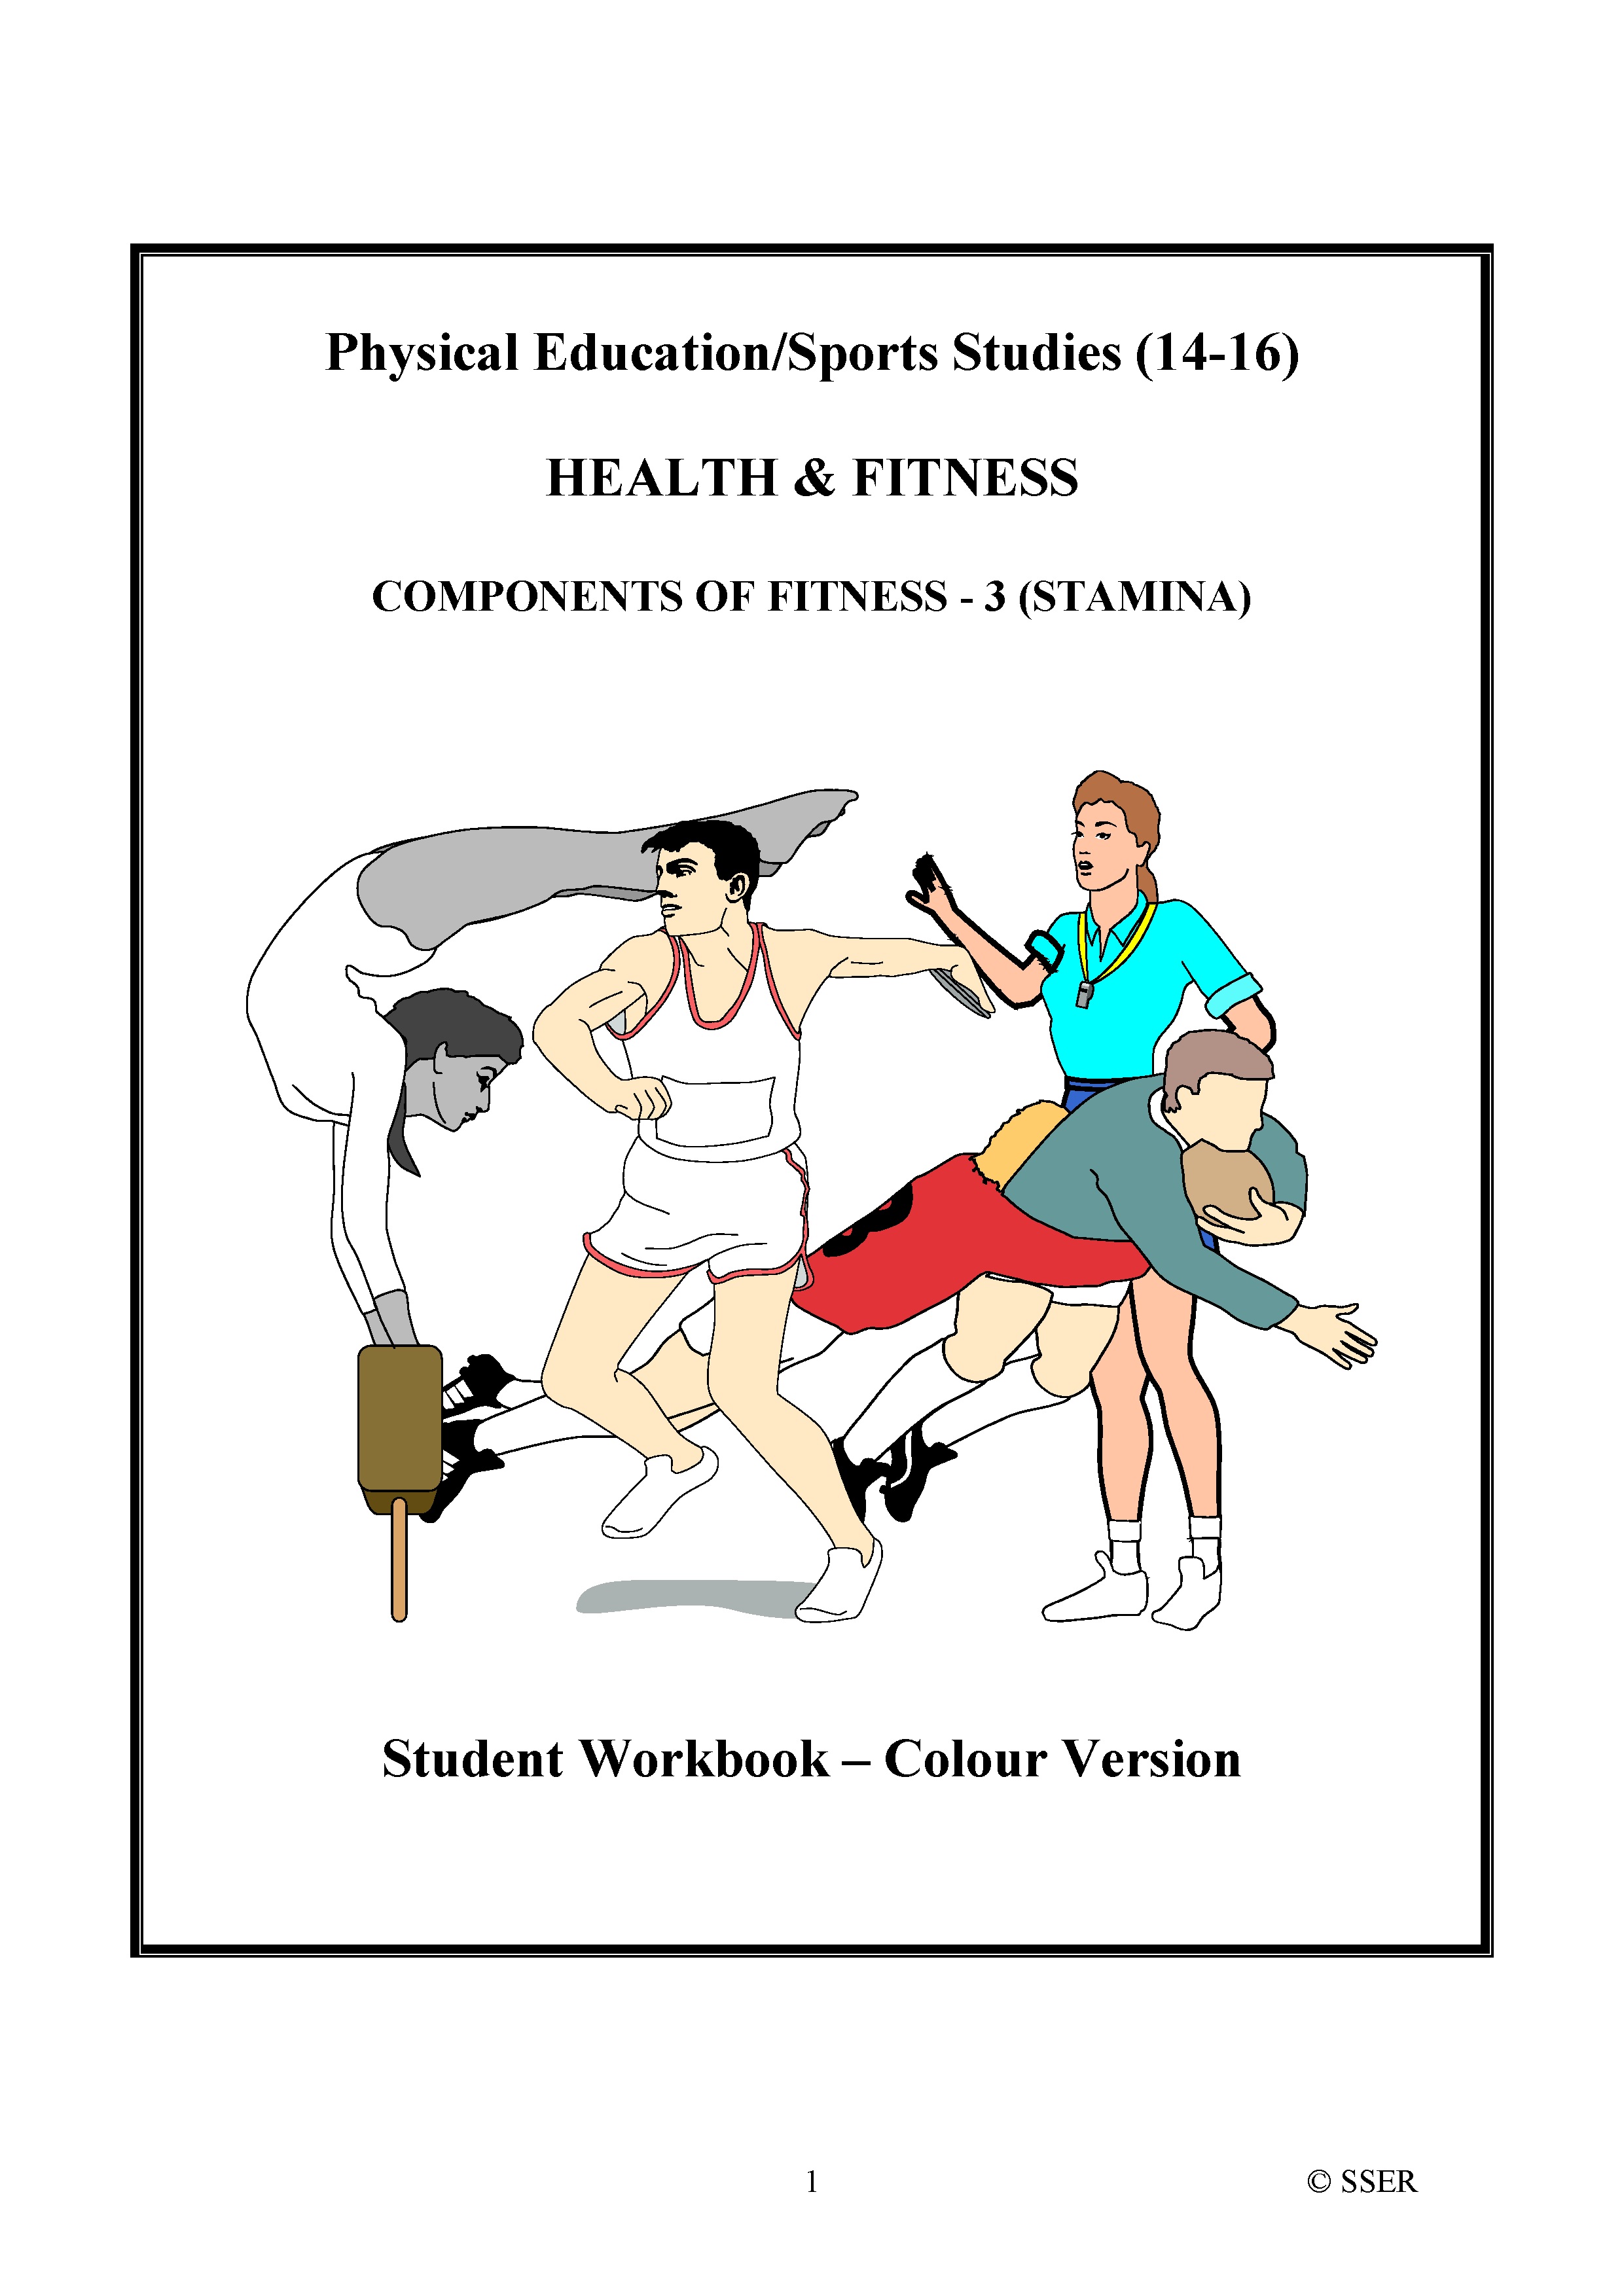 PE305ST - Components of Fitness - 3 (Stamina) WS